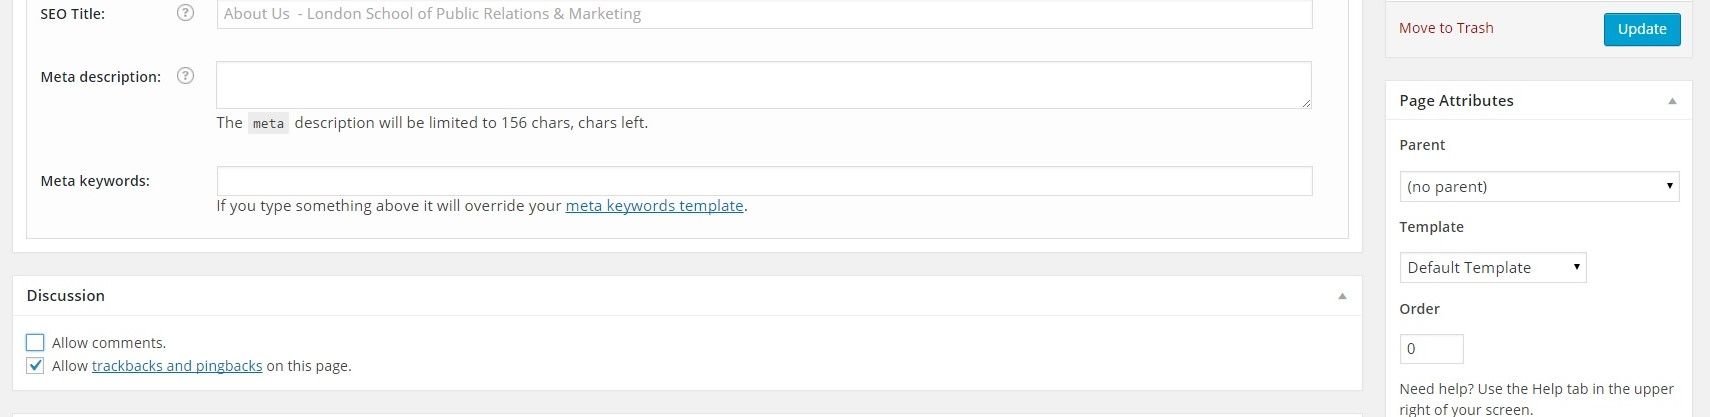 Leave a reply form removal -Wordpress step 2 uncheck allow comments on Page